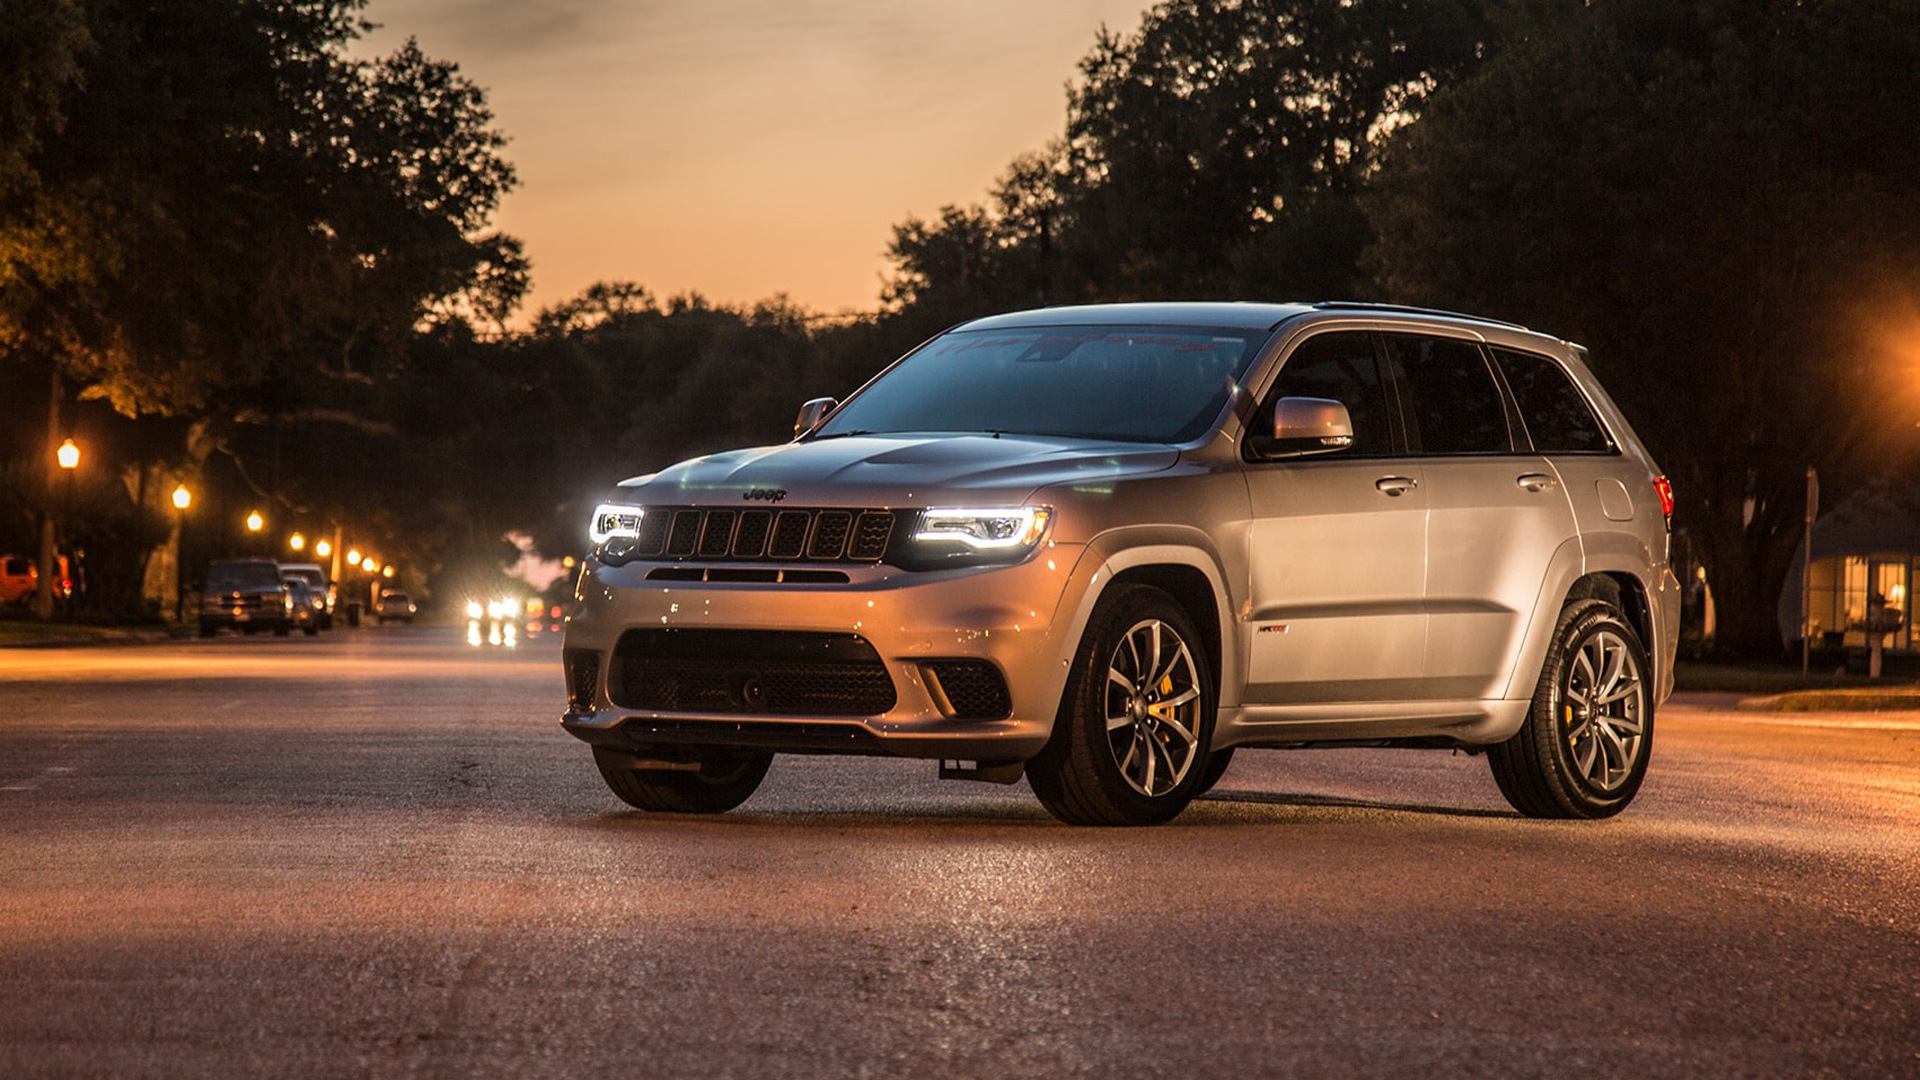 Meet the world's fastest SUV: Hennessey HPE1200 Jeep Grand